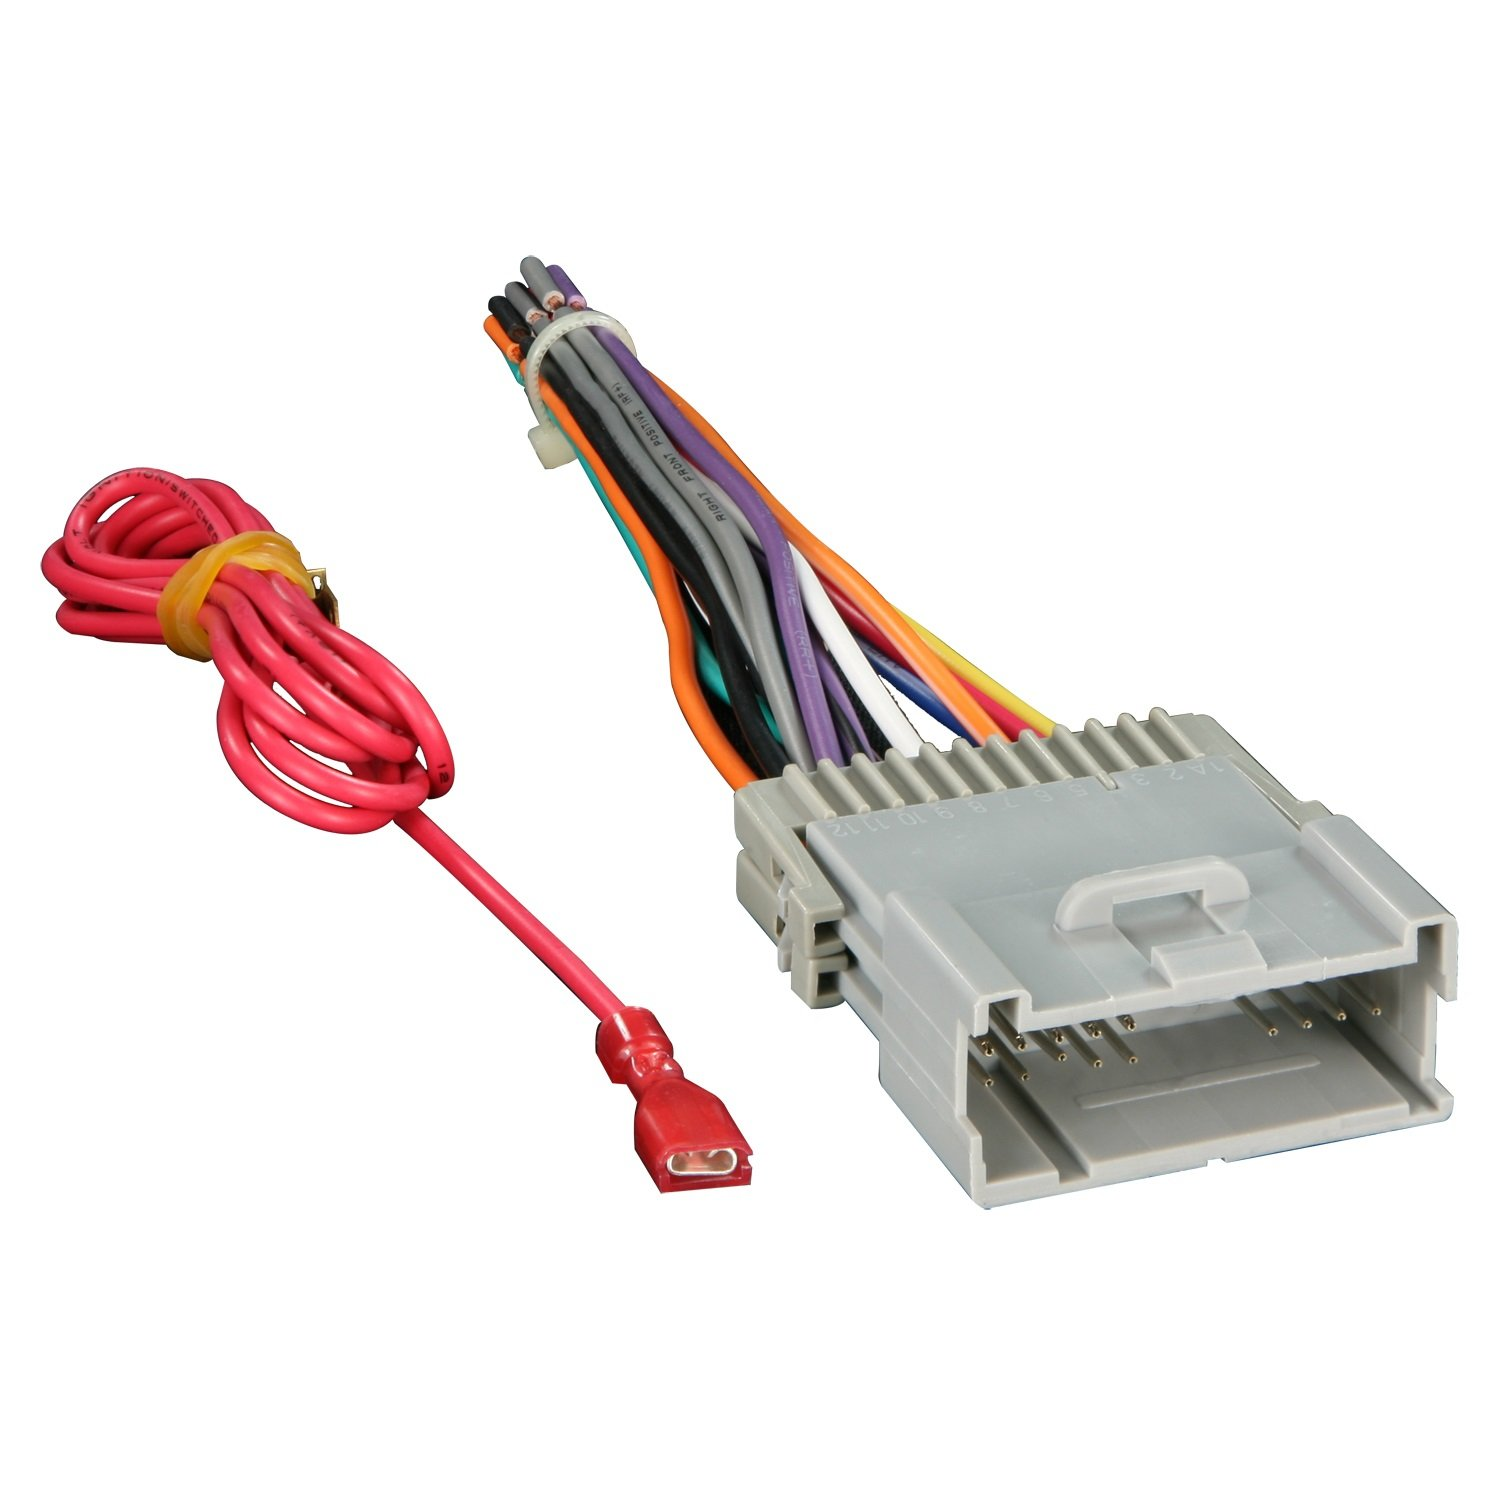 61eewxp9orL._SL1500_ amazon com metra 70 2003 radio wiring harness for gm 98 08 2002 Suburban MPG at fashall.co